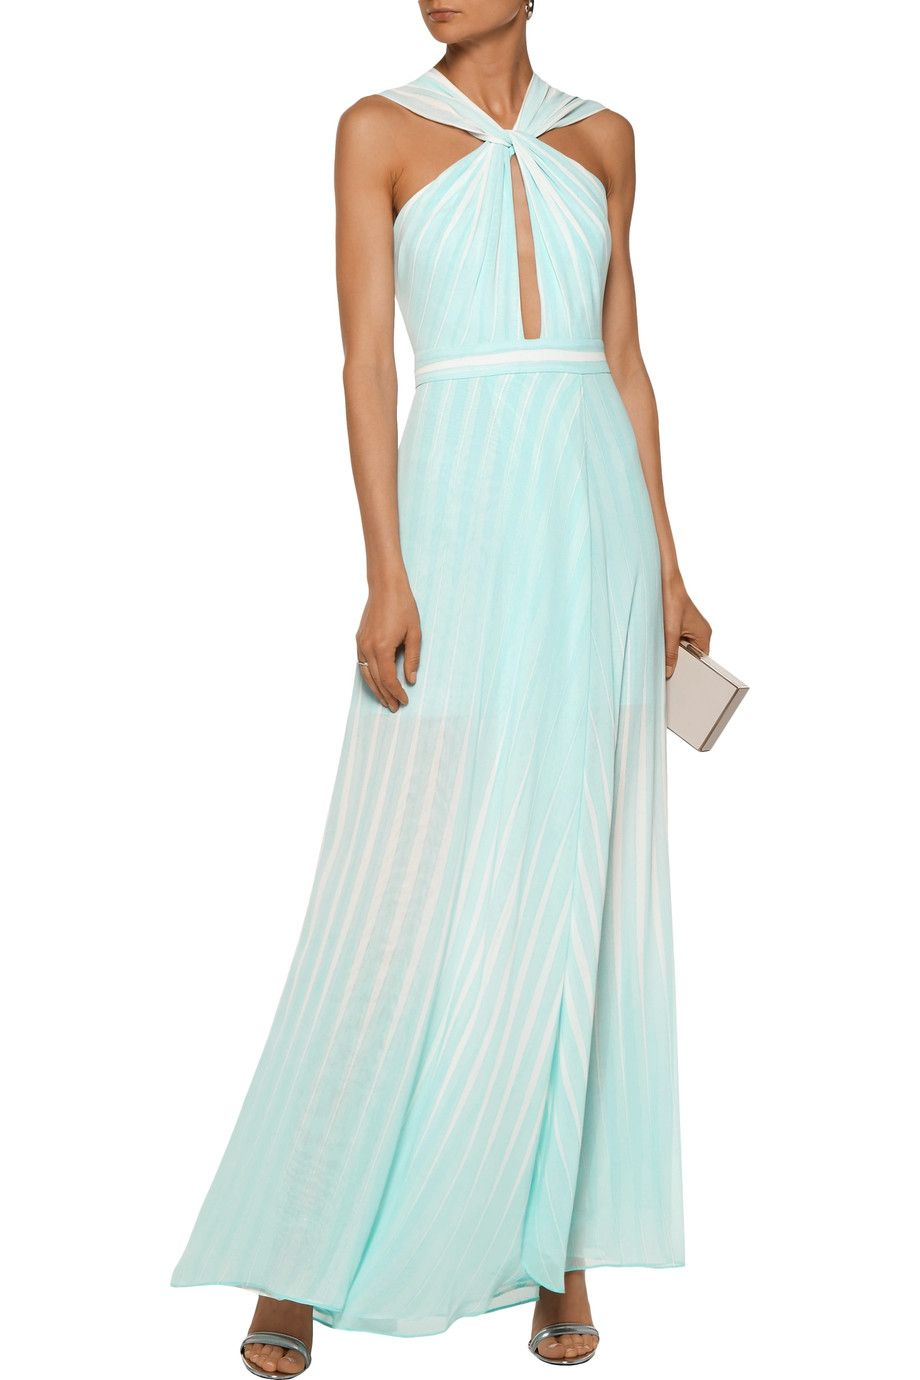 Shop On Sale Halston Heritage Twisted Striped Chiffon Gown Browse